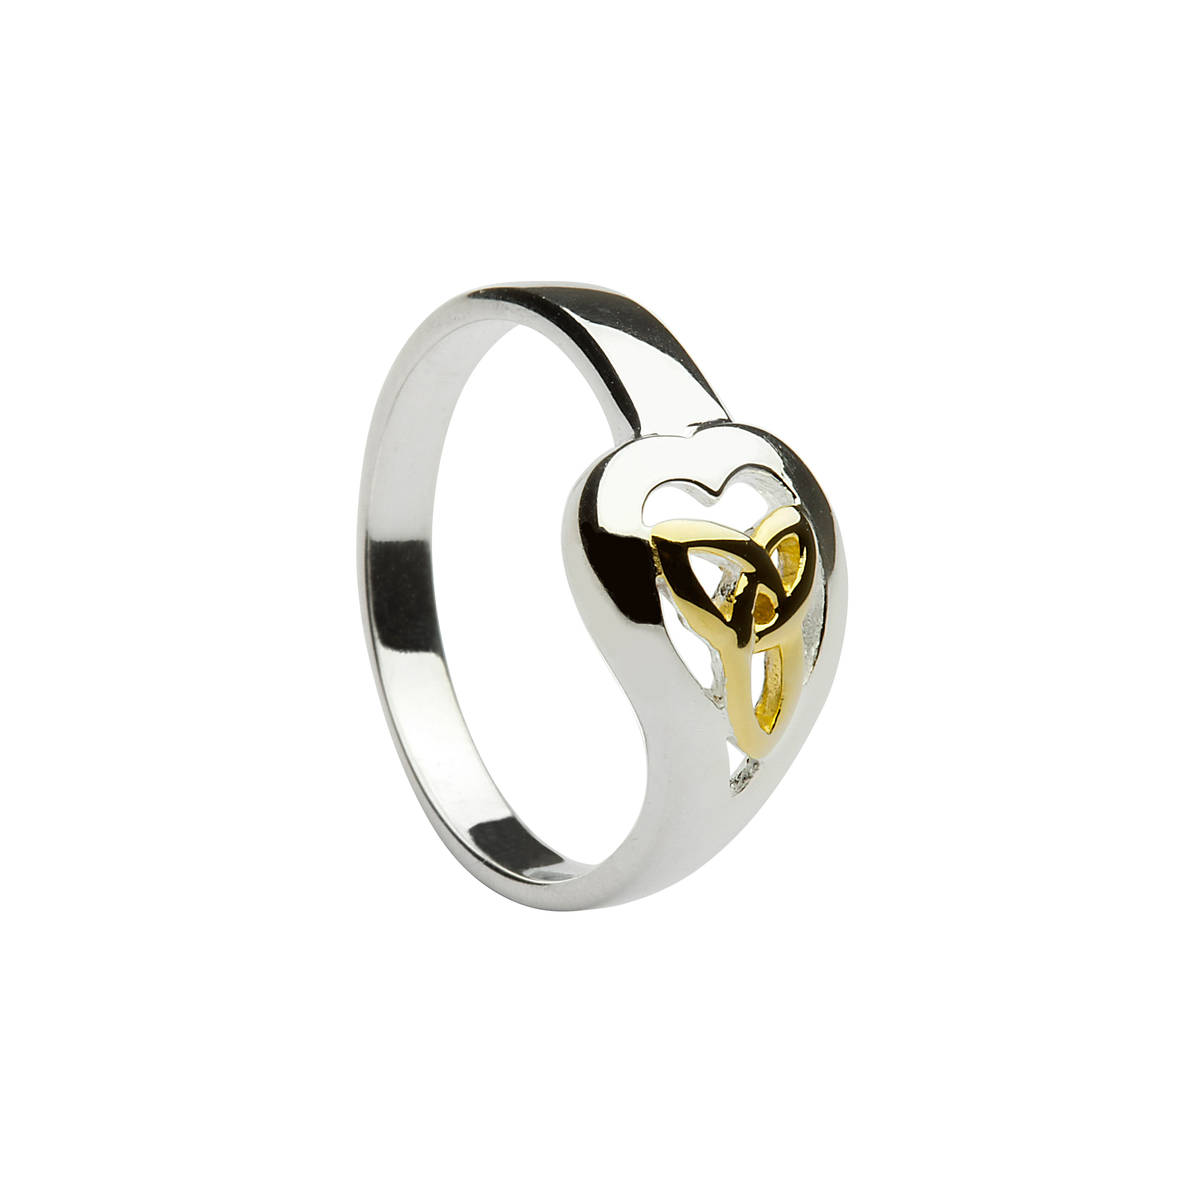 Silver ring with gold plated trinity knot centre.